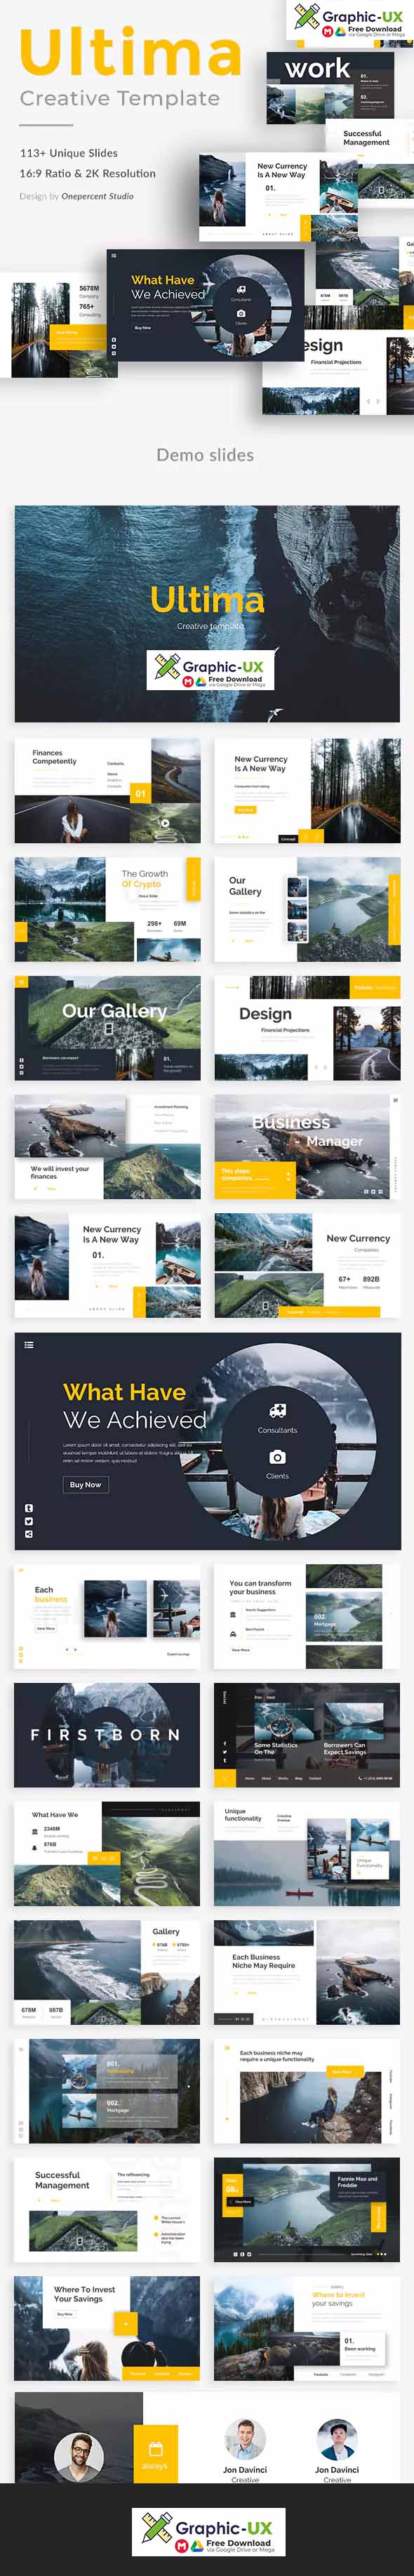 Ultima Creative Powerpoint Template